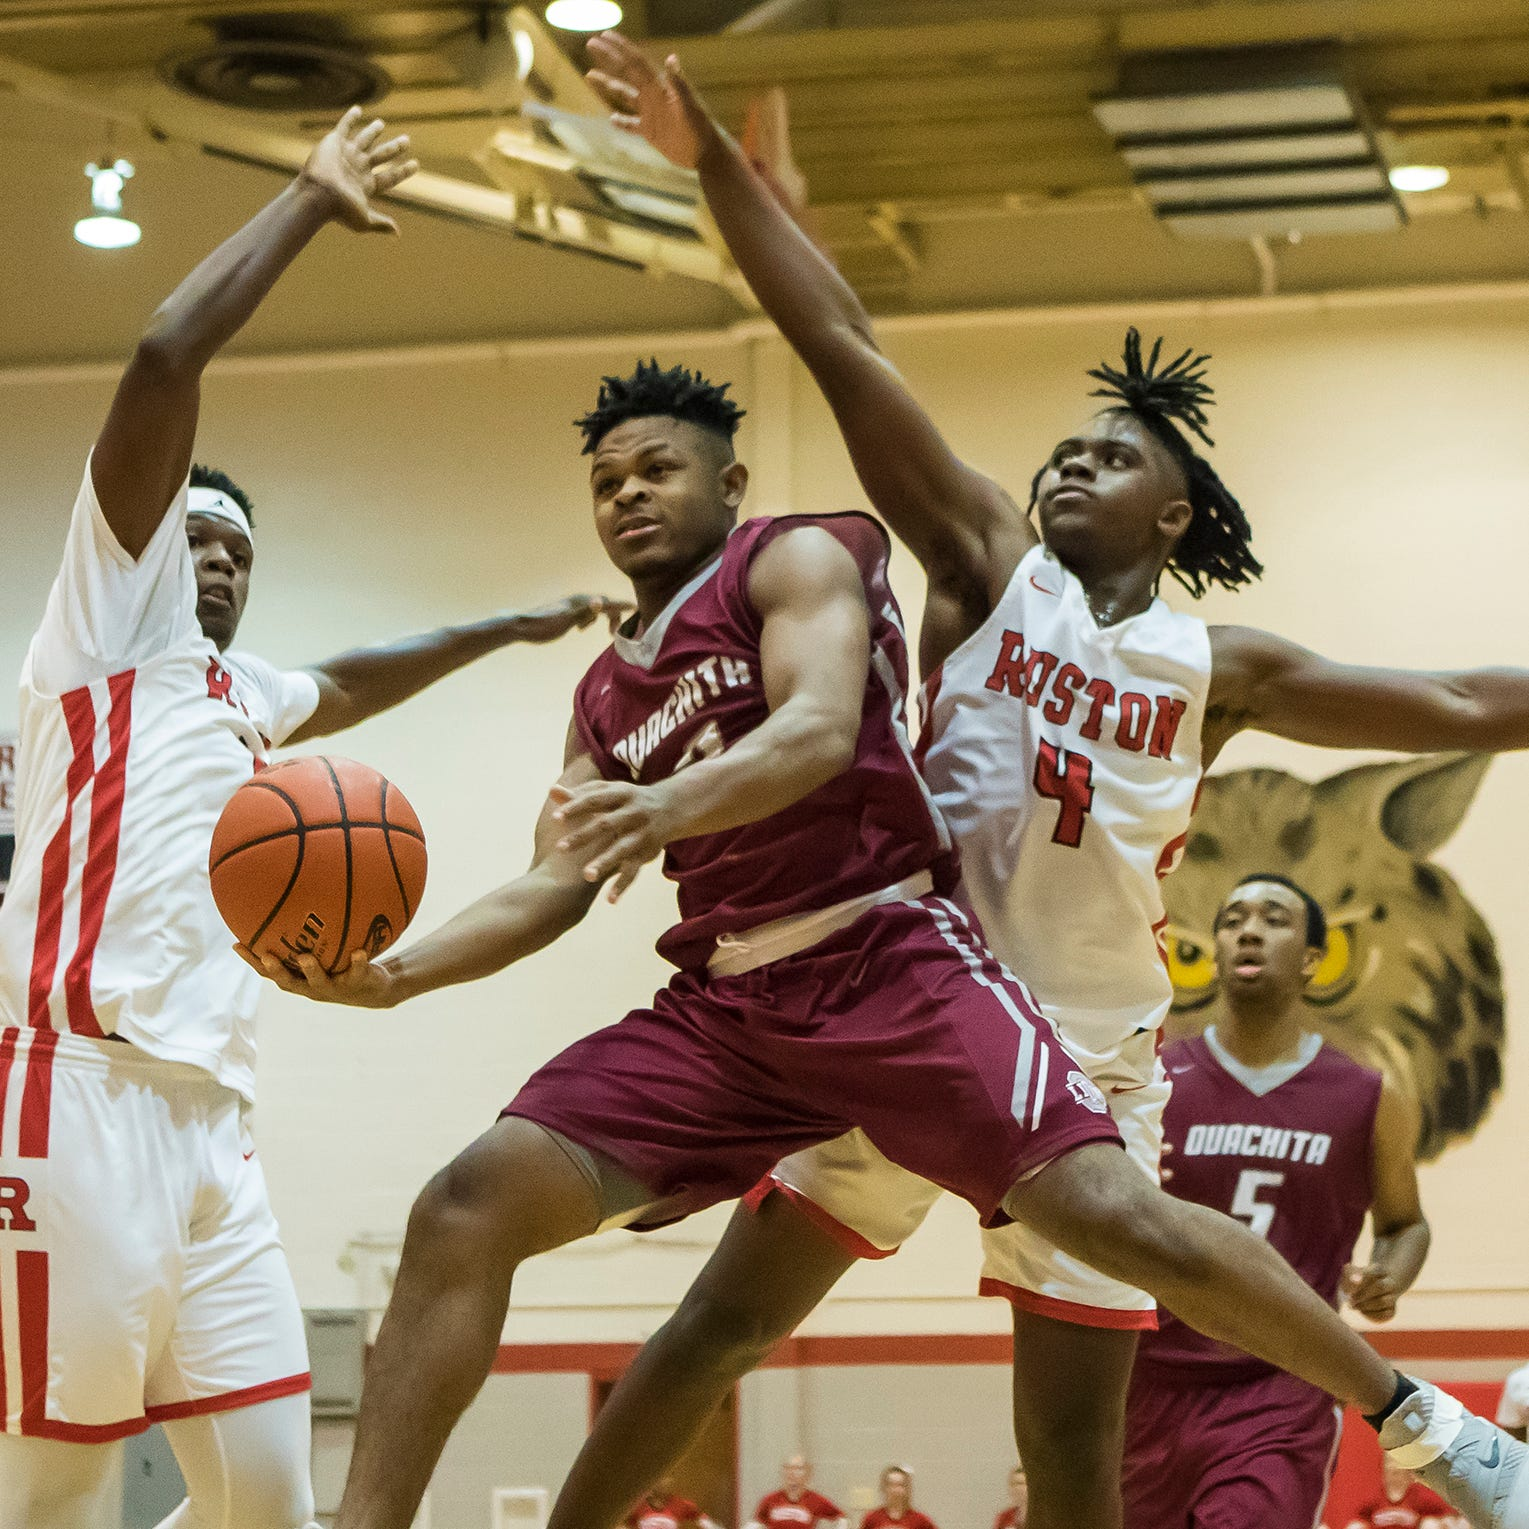 Ouachita's Paul King (2) splits the defending duo of Ruston's Ray Parker (15) and Jordan Williams (4) while going for a lay-up during the game at Ruston High School in Ruston, La. on Feb. 15. Ouachita would win the game 66-49 and complete the regular season undefeated.